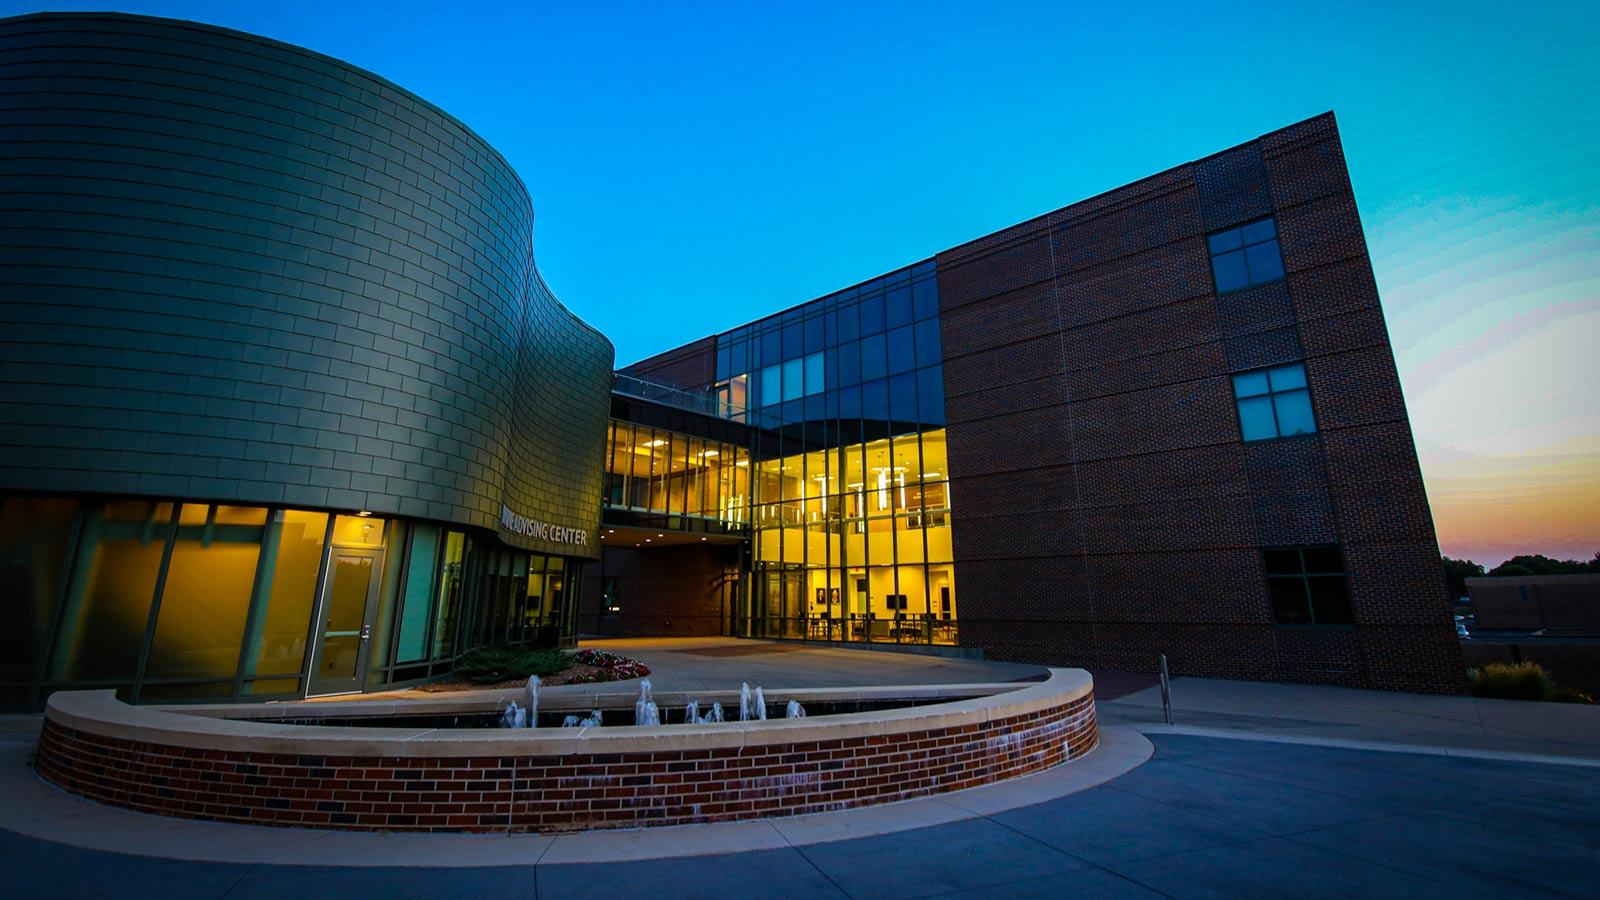 The Krone Center and Buhler Rohlfs building at Morningside College at night. Photo by Anna Uehling.